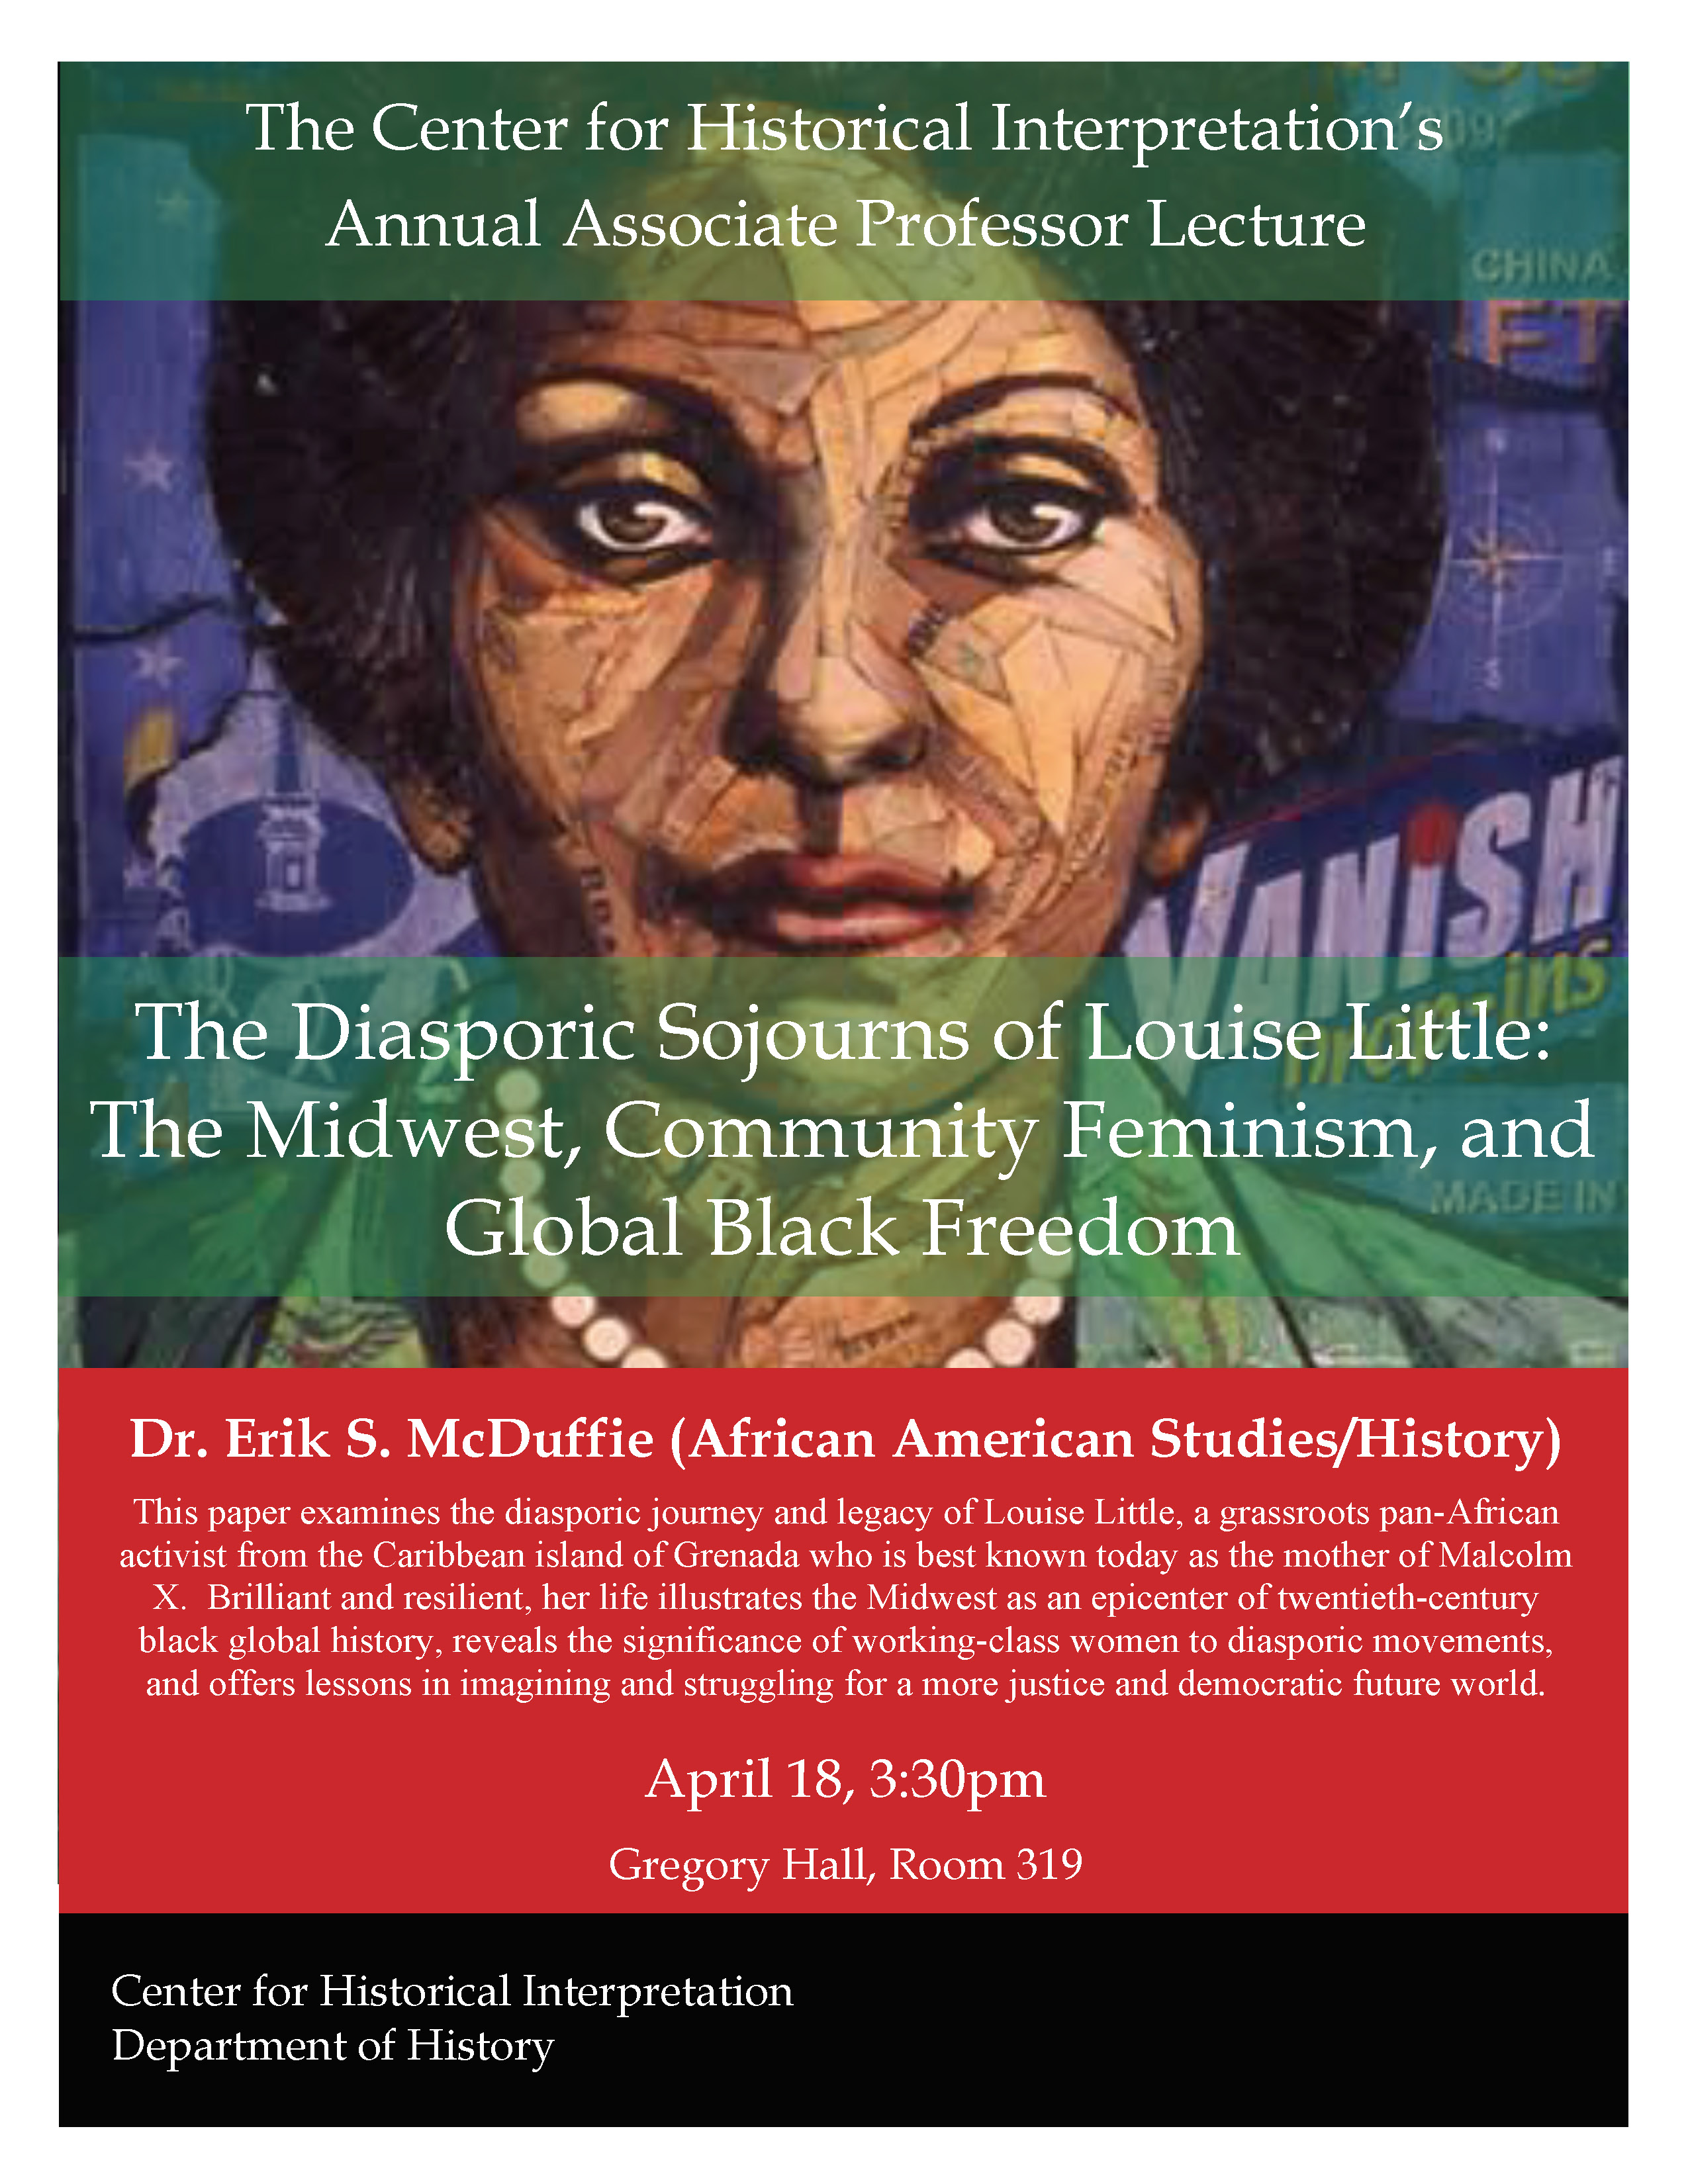 Flyer for lecture with image of woman